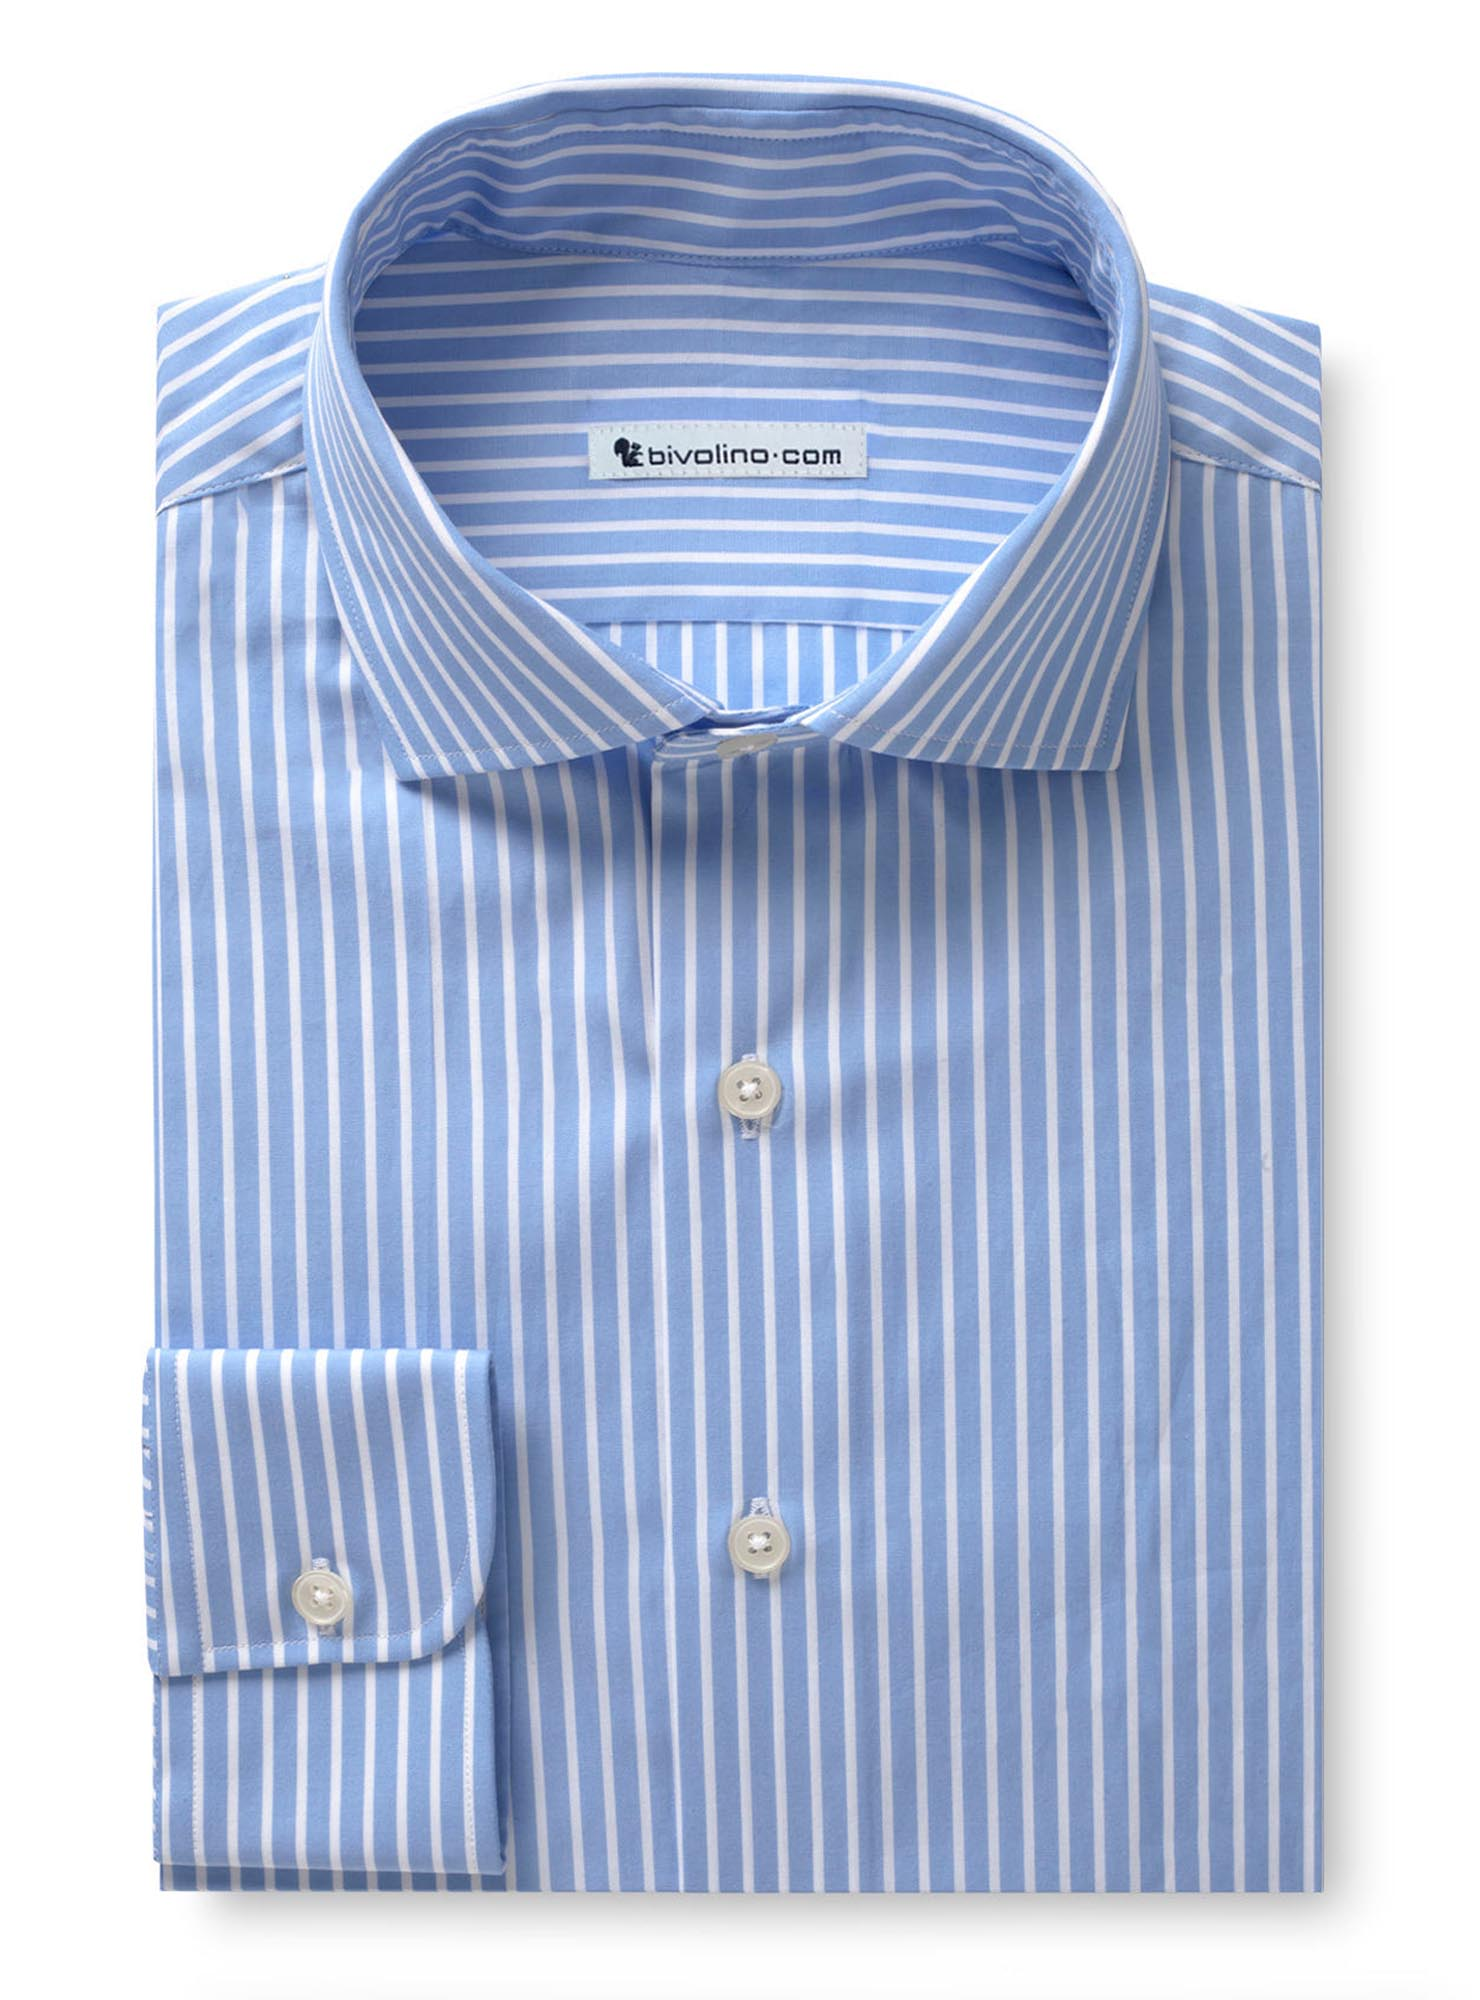 DIGEA - Poplin light blue striped shirt - TUFO 2